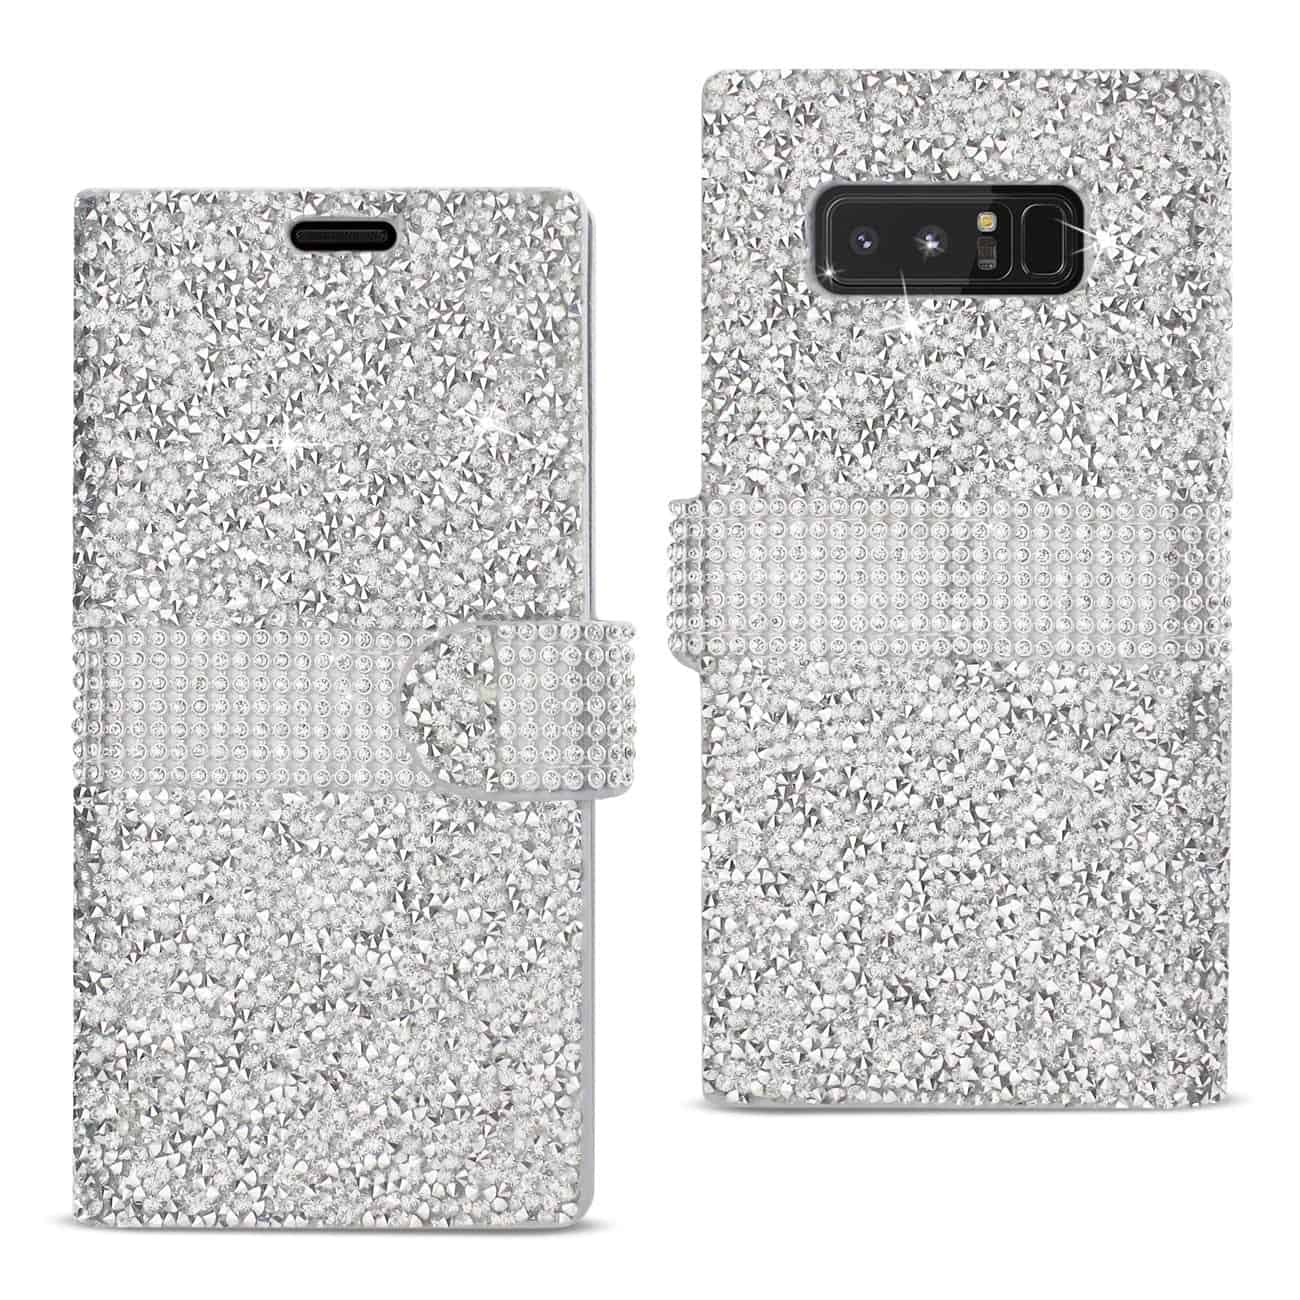 SAMSUNG GALAXY NOTE 8 DIAMOND RHINESTONE WALLET CASE IN SILVER